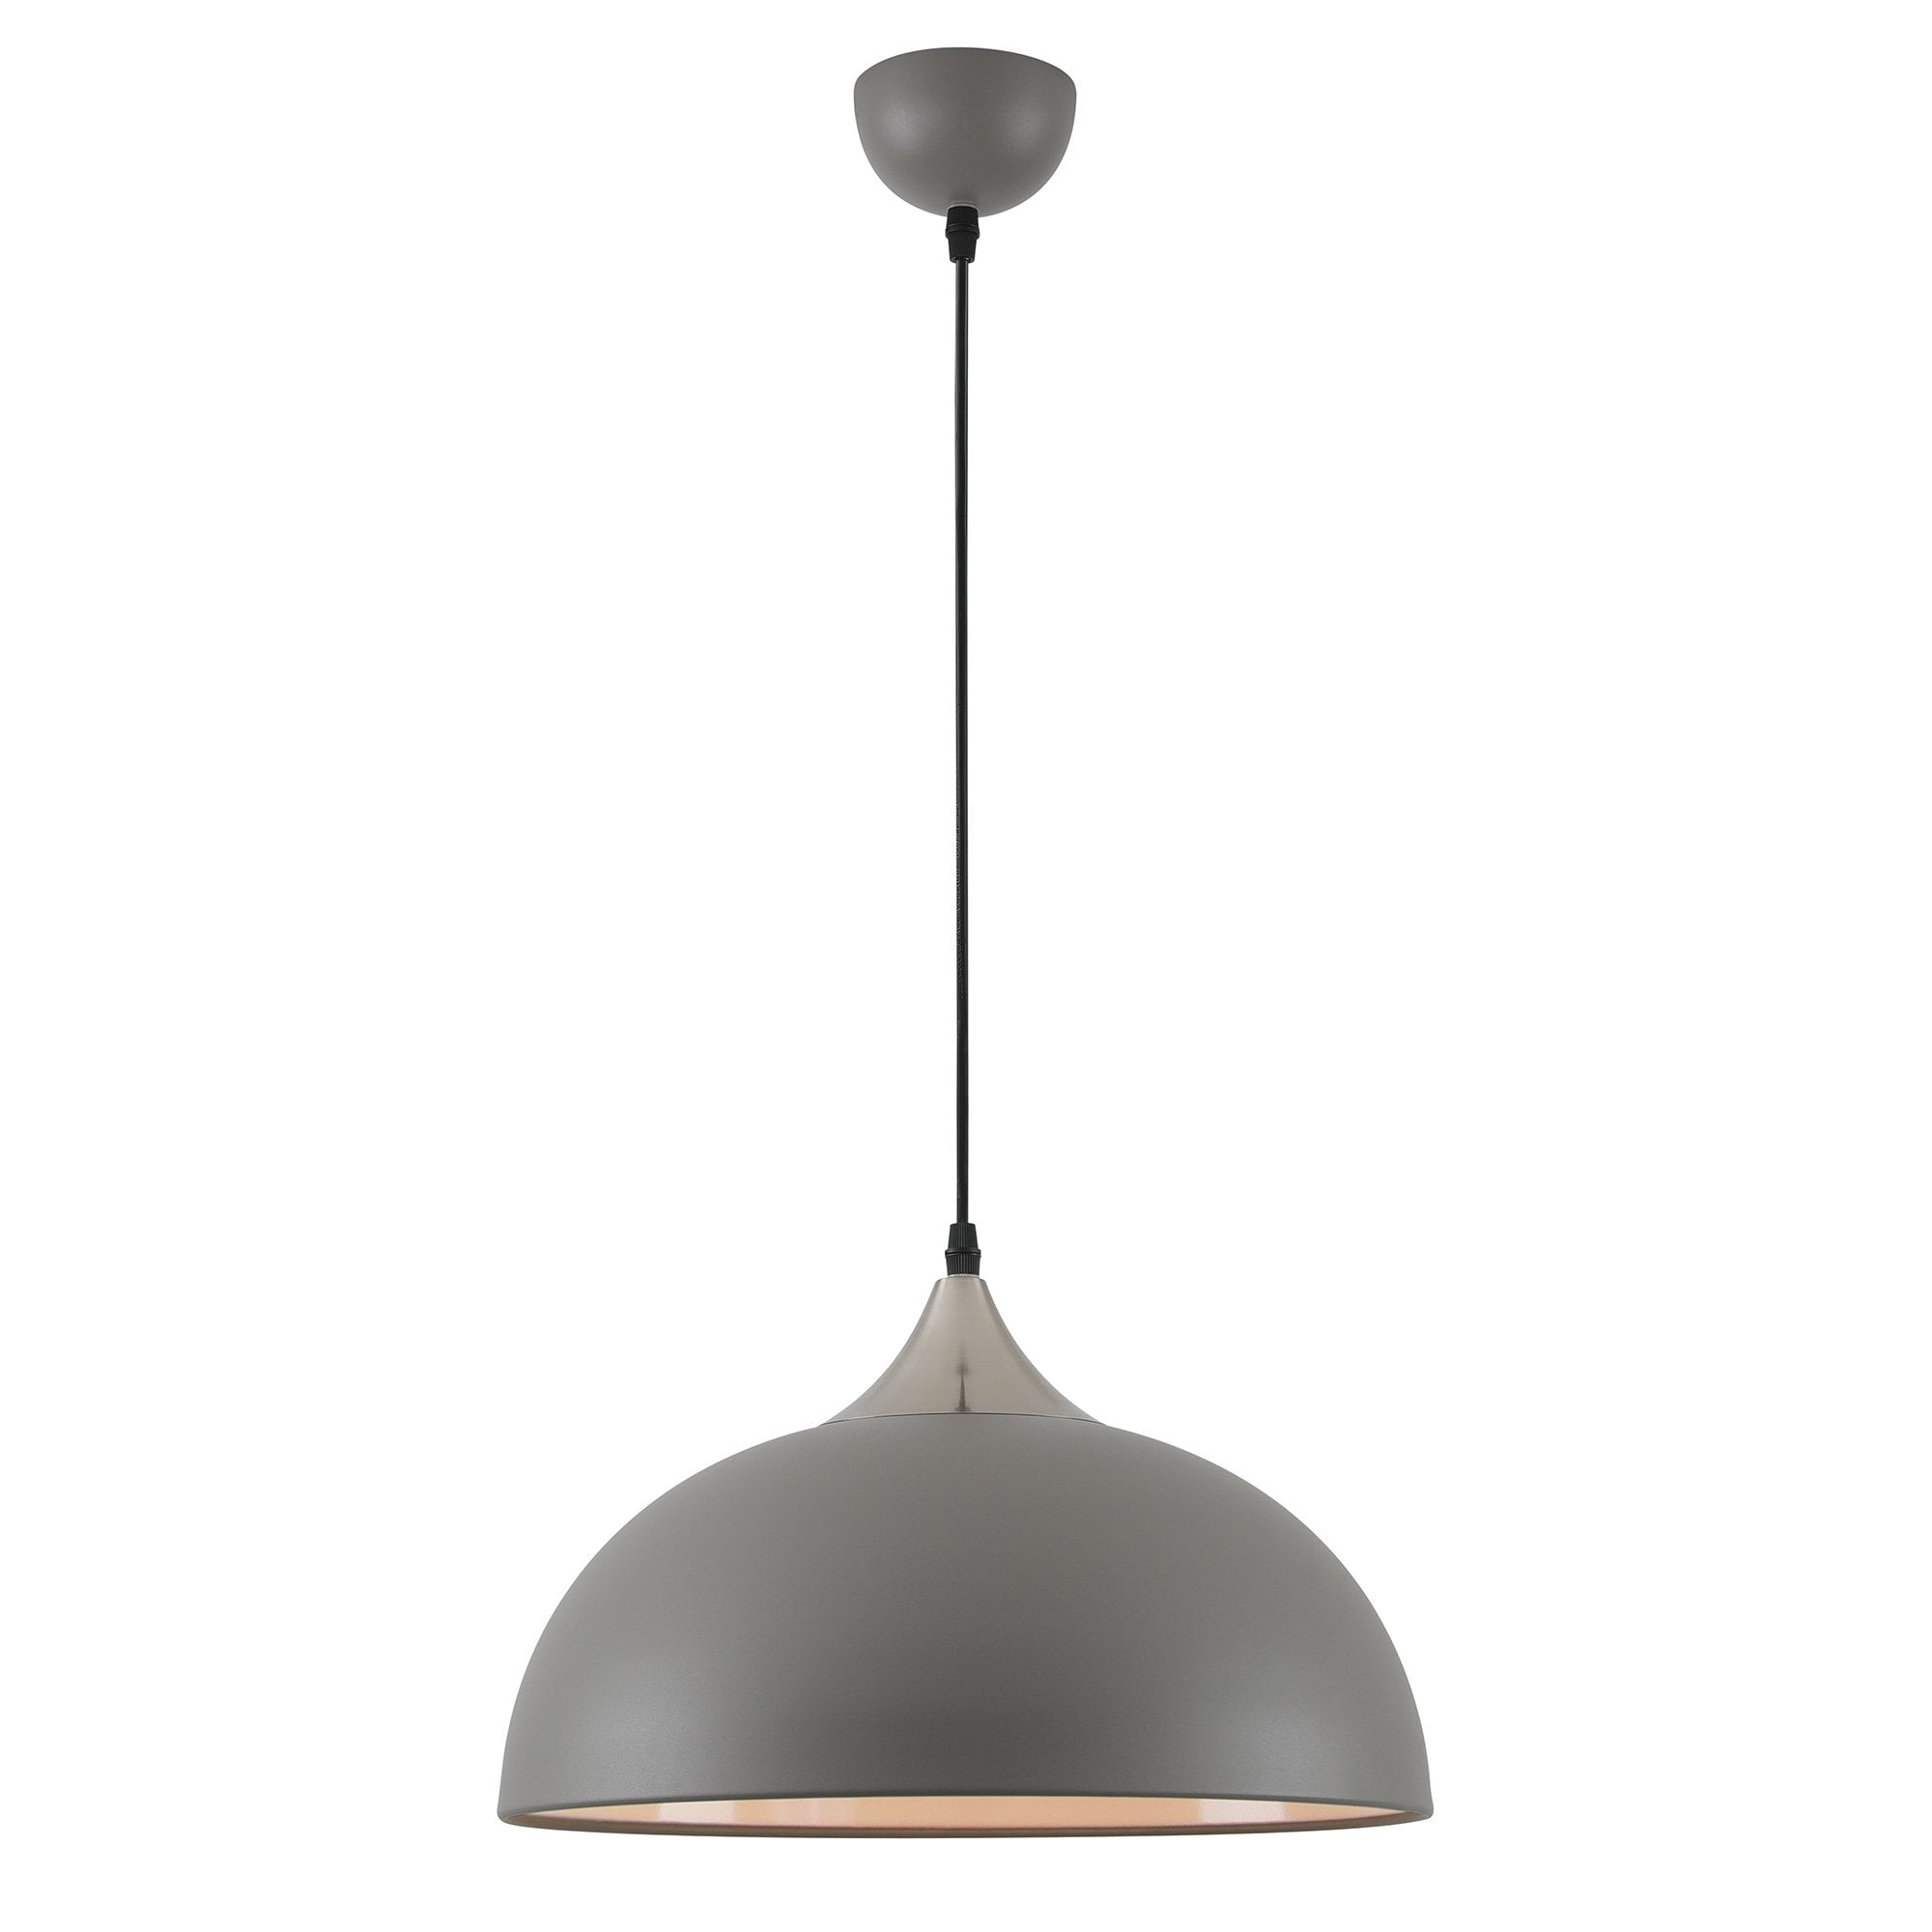 1 Light Ceiling Pendant Sand Grey Satin Nickel